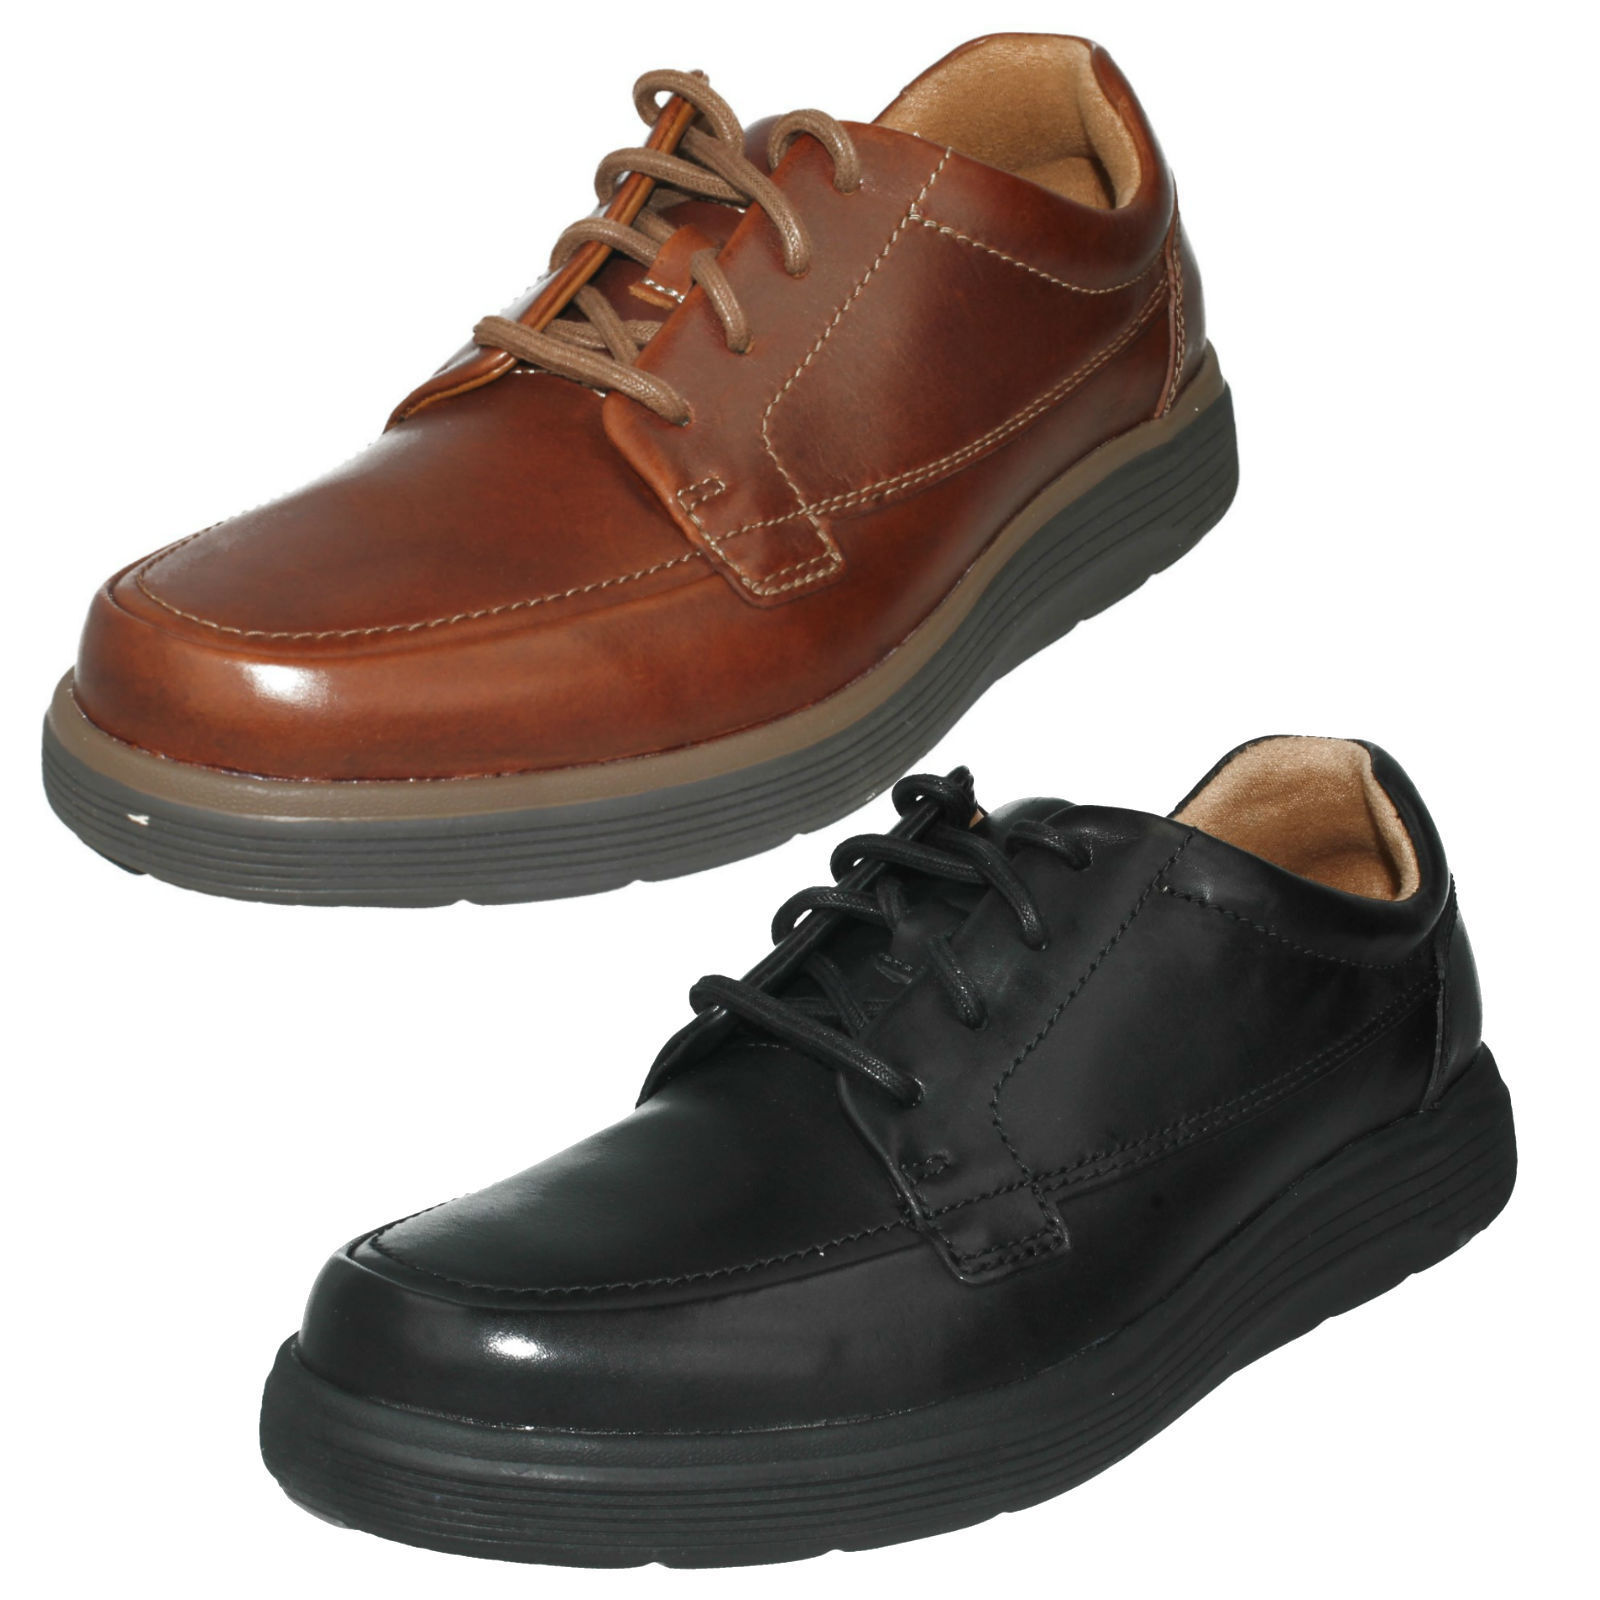 Herren CLARKS LEATHER LACE UP UNSTRUCTUROT CASUAL ABODE SOFT CUSHION Schuhe UN ABODE CASUAL EASE 52feb4